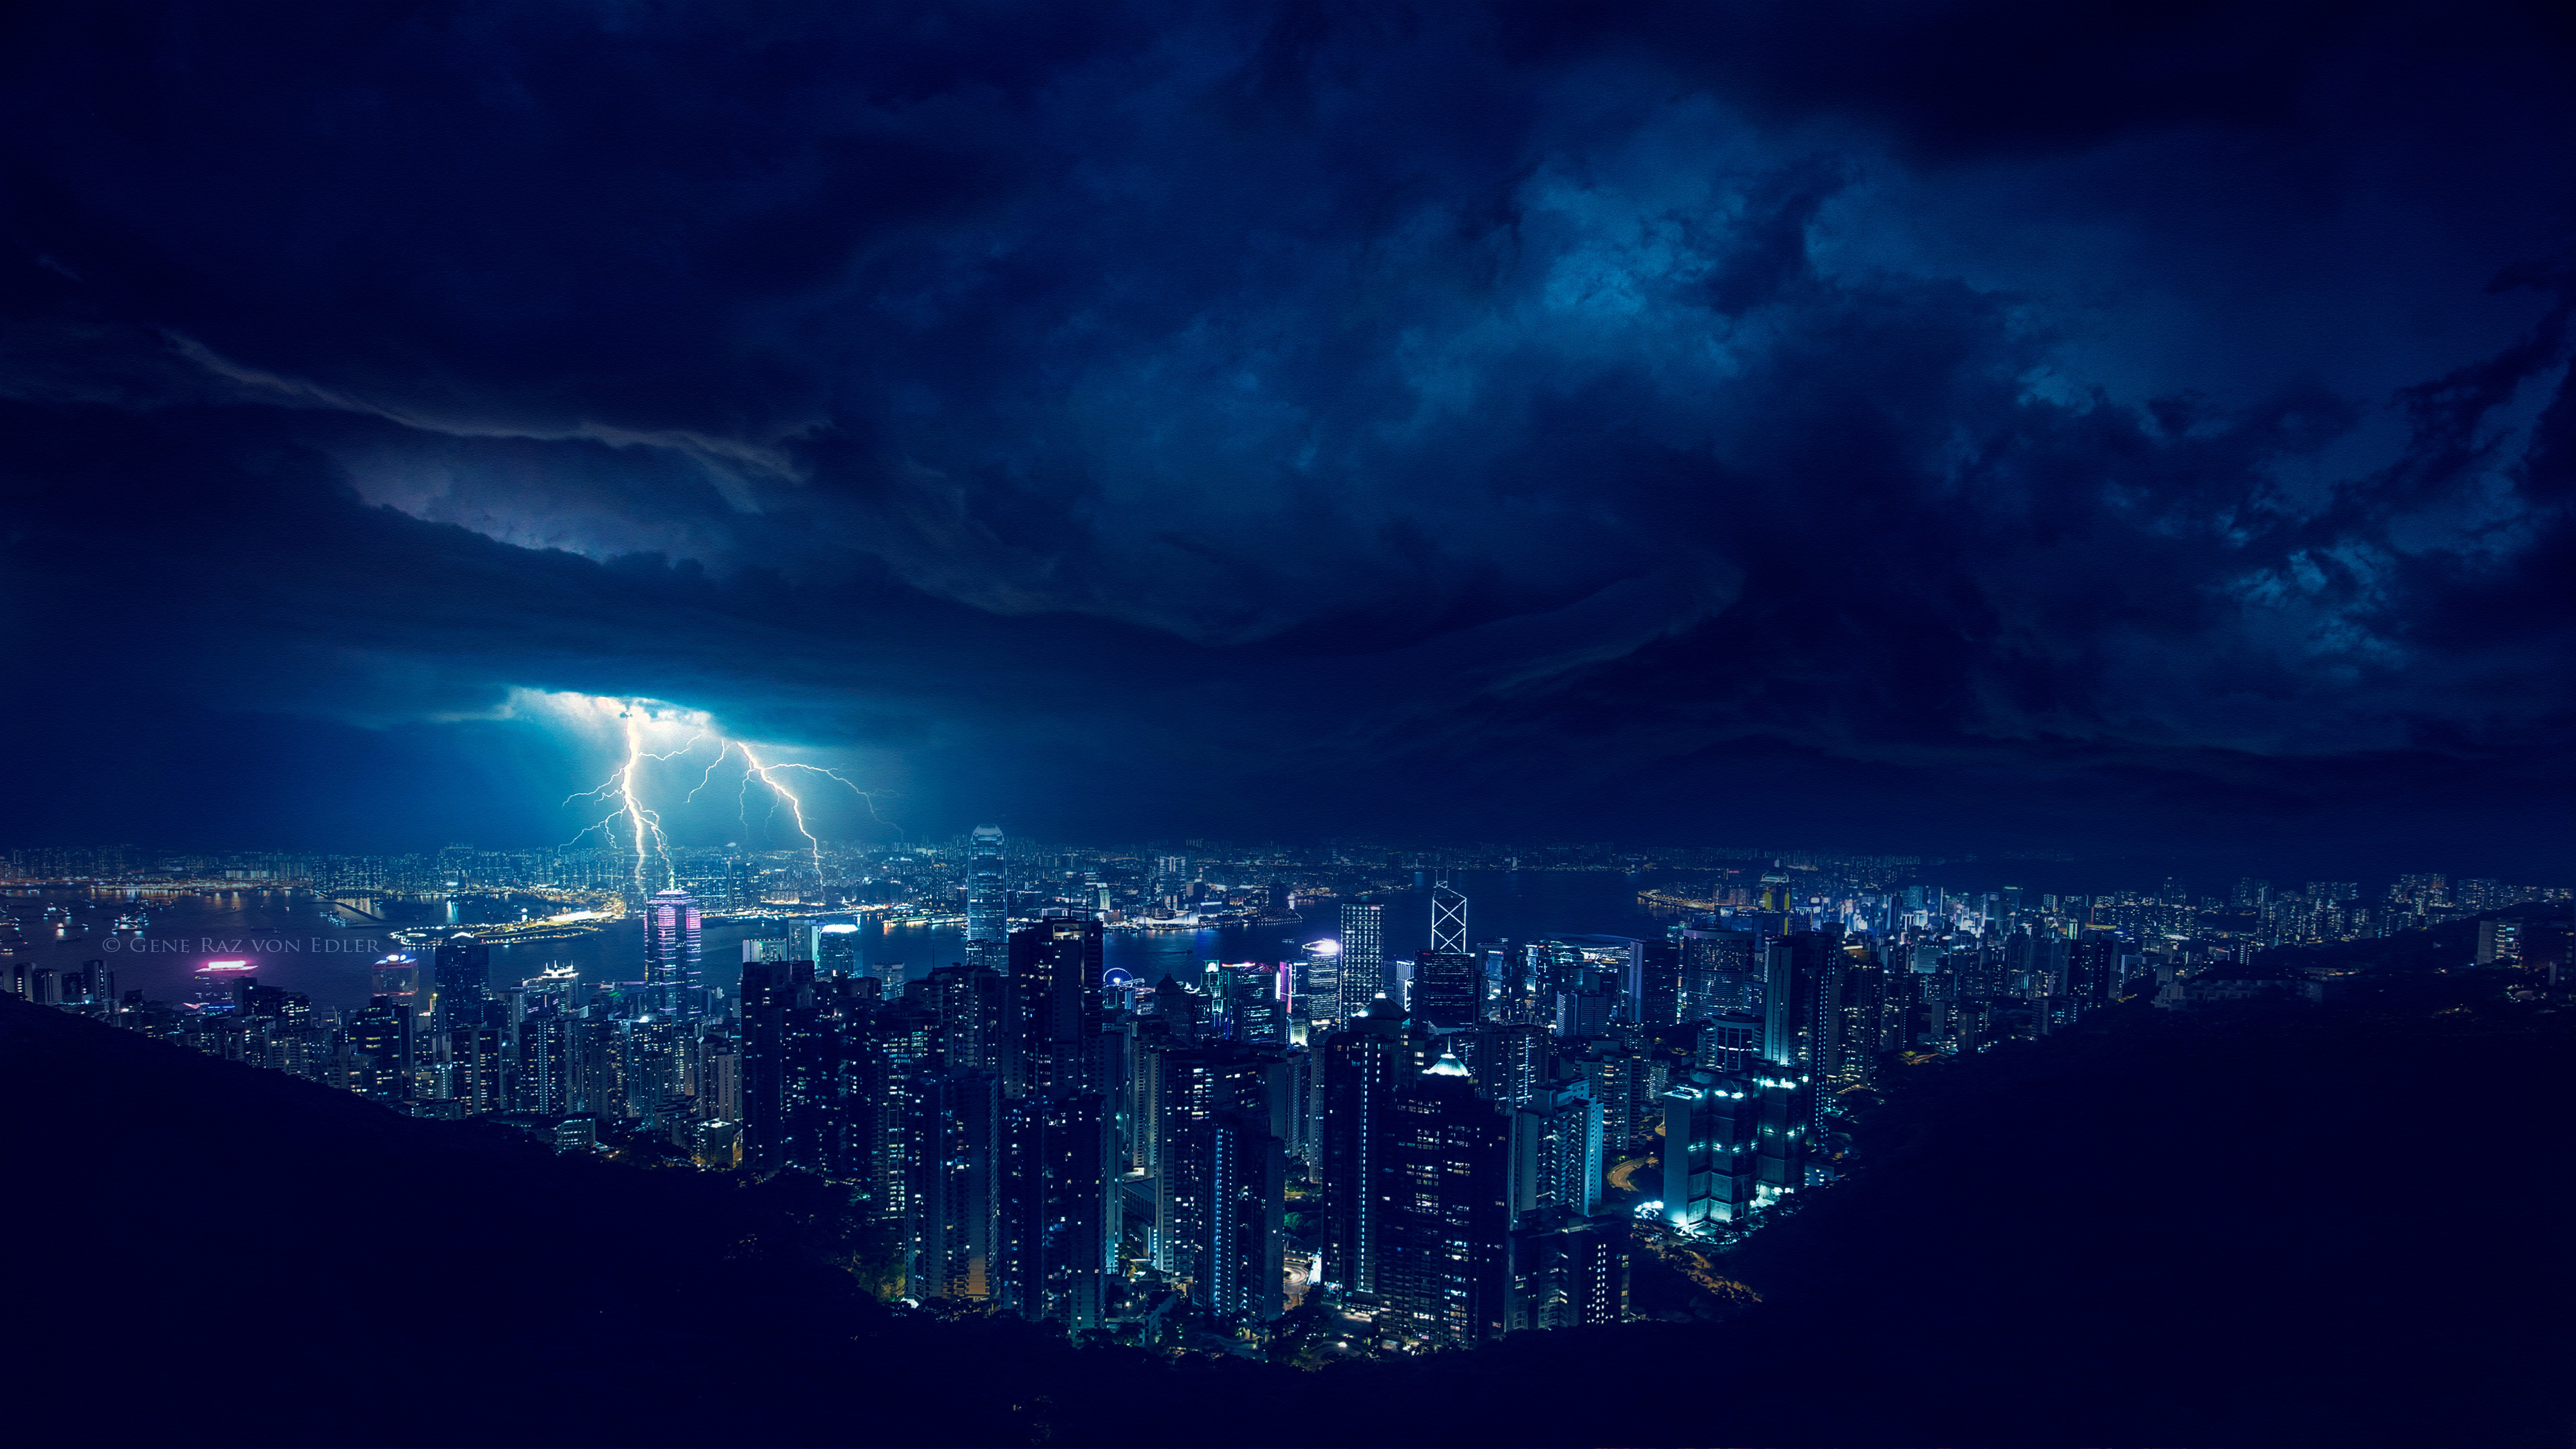 Storm night lightning in city 4k hd photography 4k wallpapers images backgrounds photos and - Lightning wallpaper 4k ...